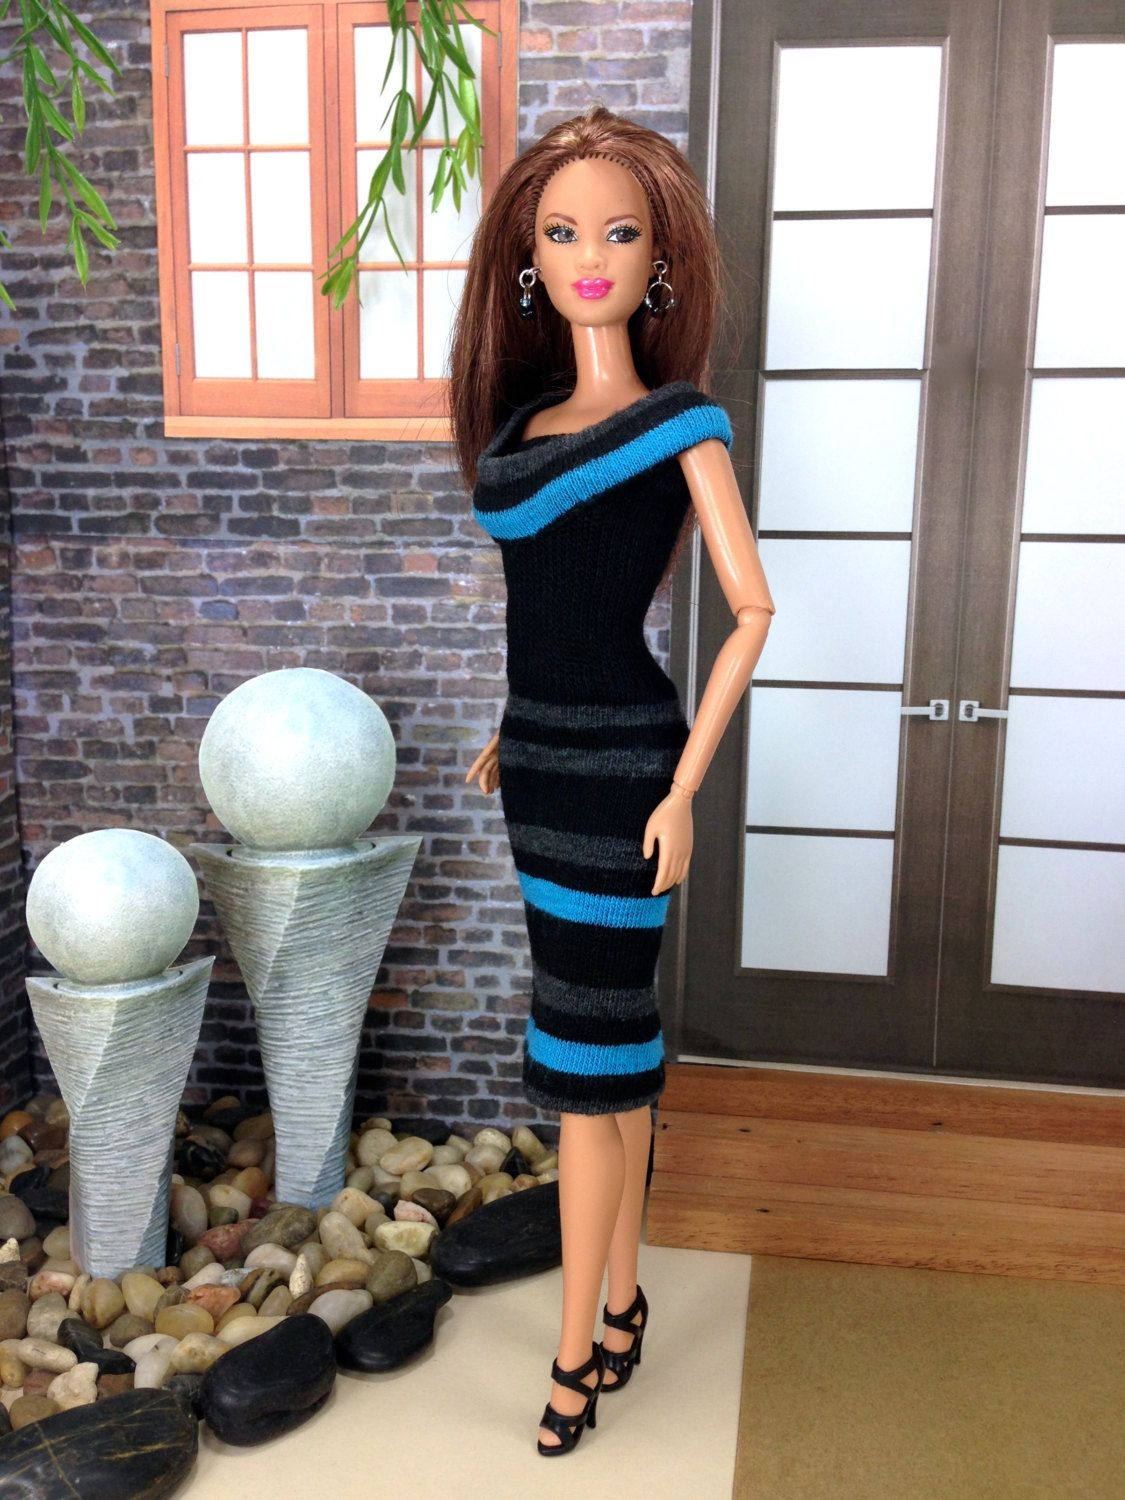 Fashion Doll Dress - 2-in-1 Design Blue, Dark Gray, and Black Striped Doll Dress with, Shoes, and Earrings. by EnchantedStyles on Etsy